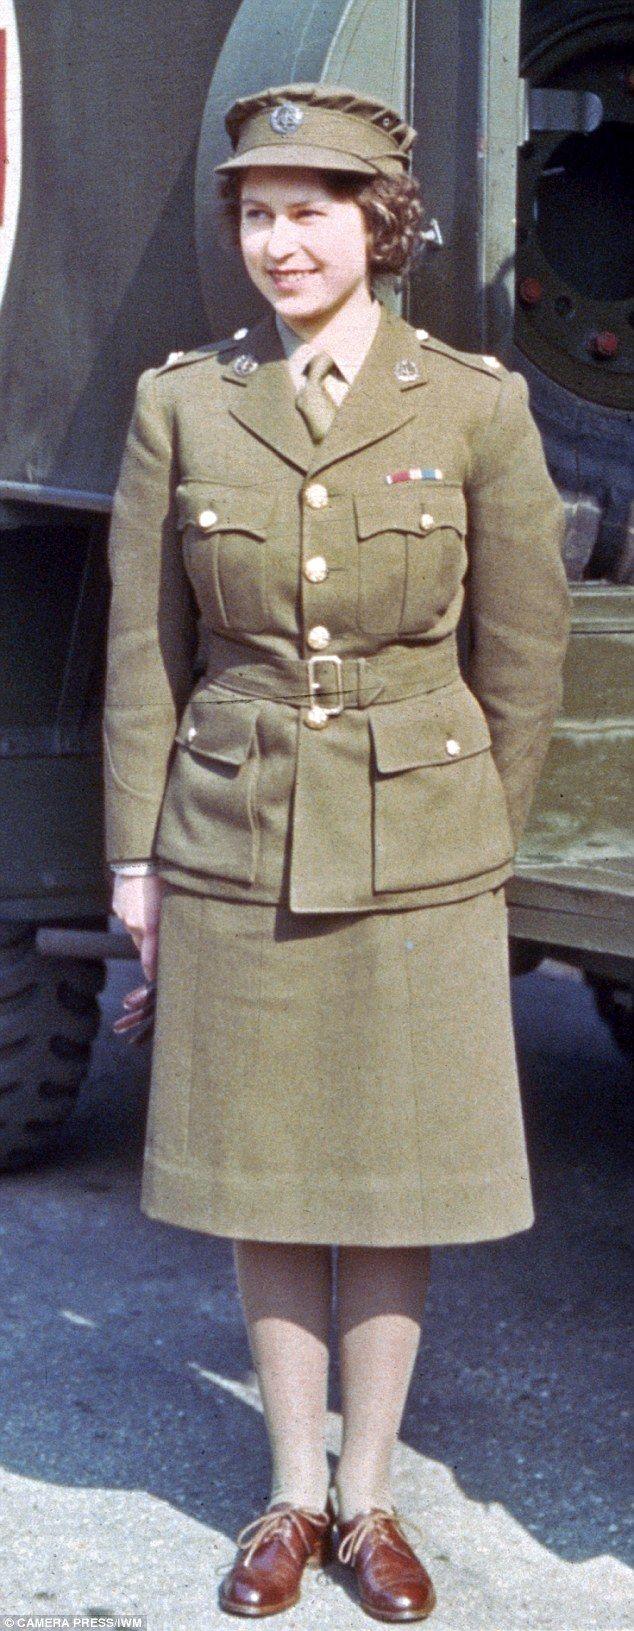 The image of Queen Elizabeth as an 18-year-old (pictured) in wartime ambulance service uniform is more reflective of her reputation than that of her giving a Nazi salute as a child, writes Sarah Bradford